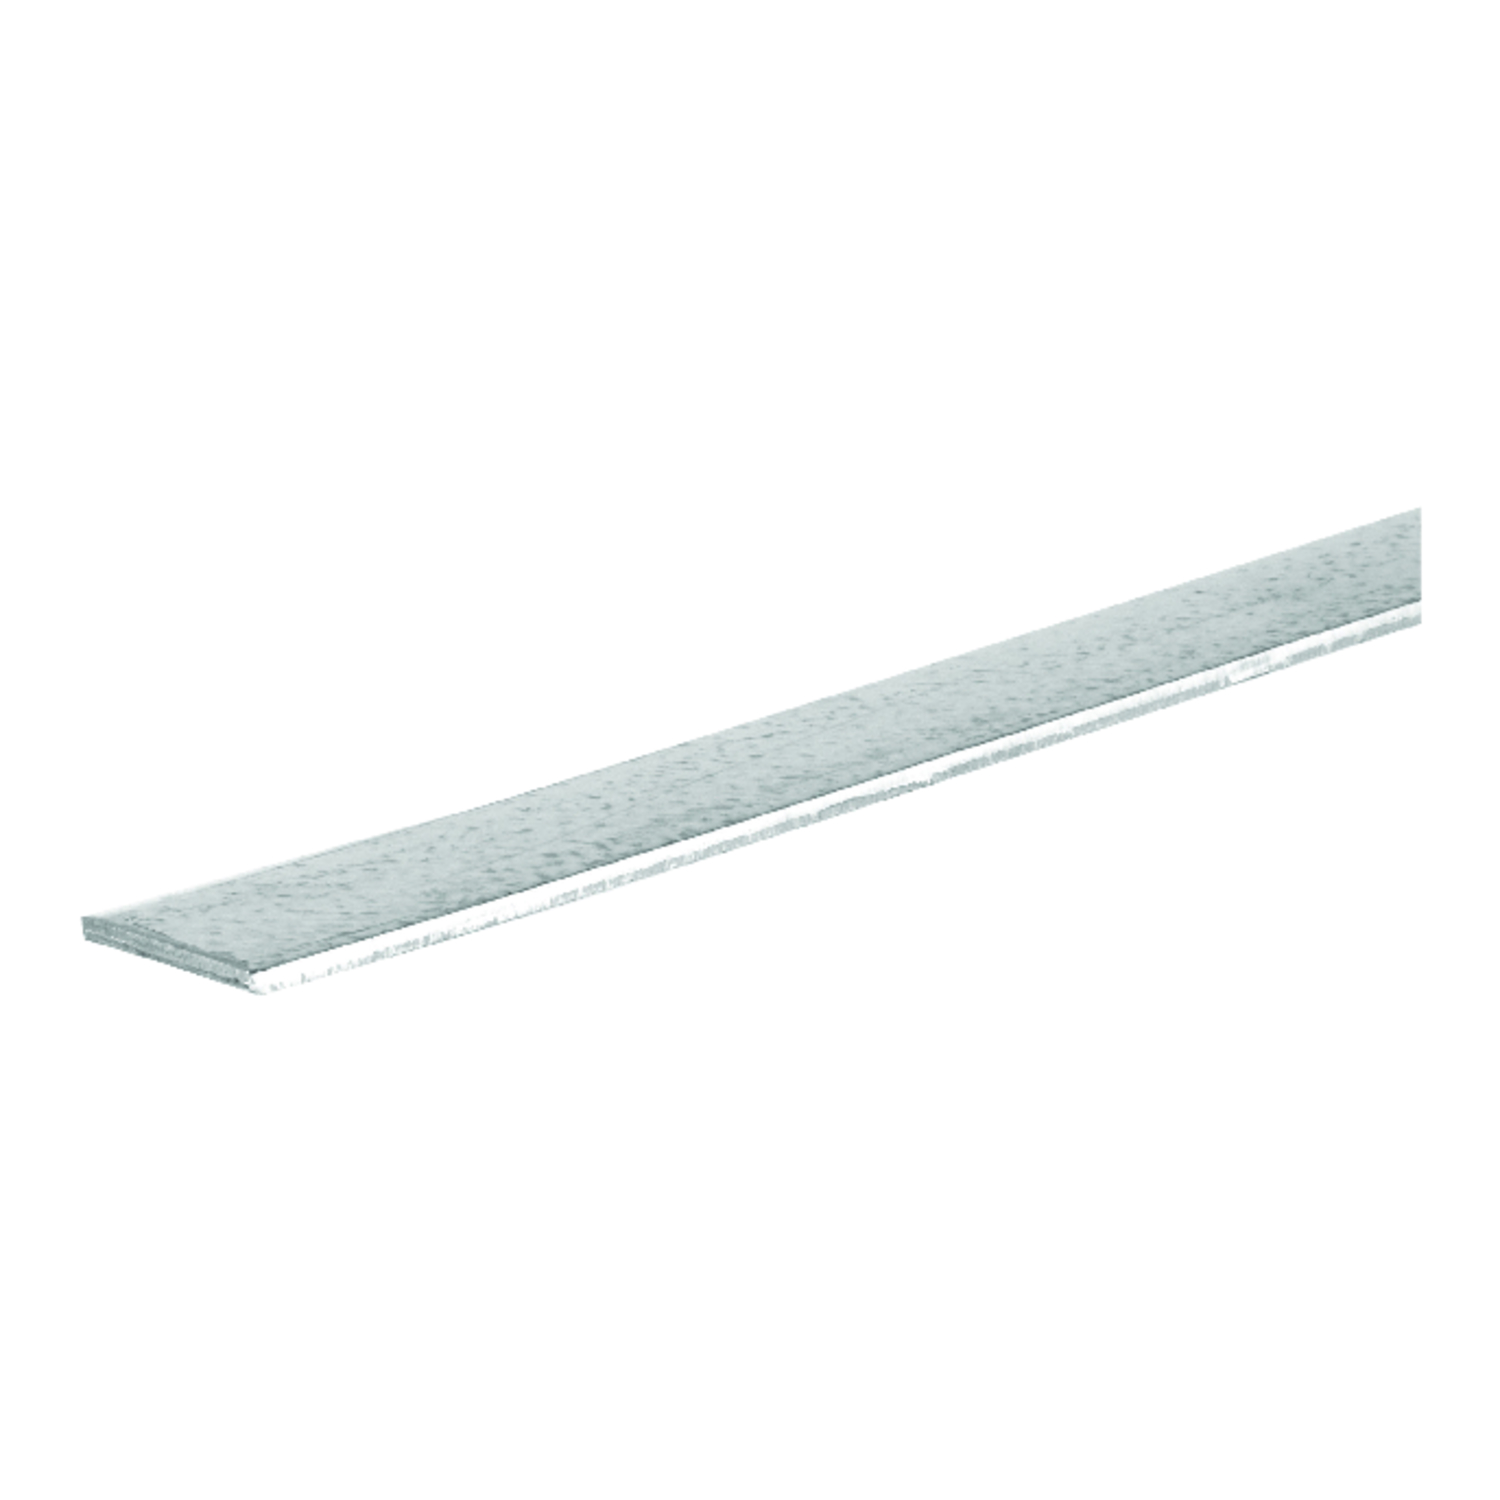 Boltmaster Flat Bar 1/8 in. x 1-1/4 in. x 48 in. 12 Ga Galvanized Steel